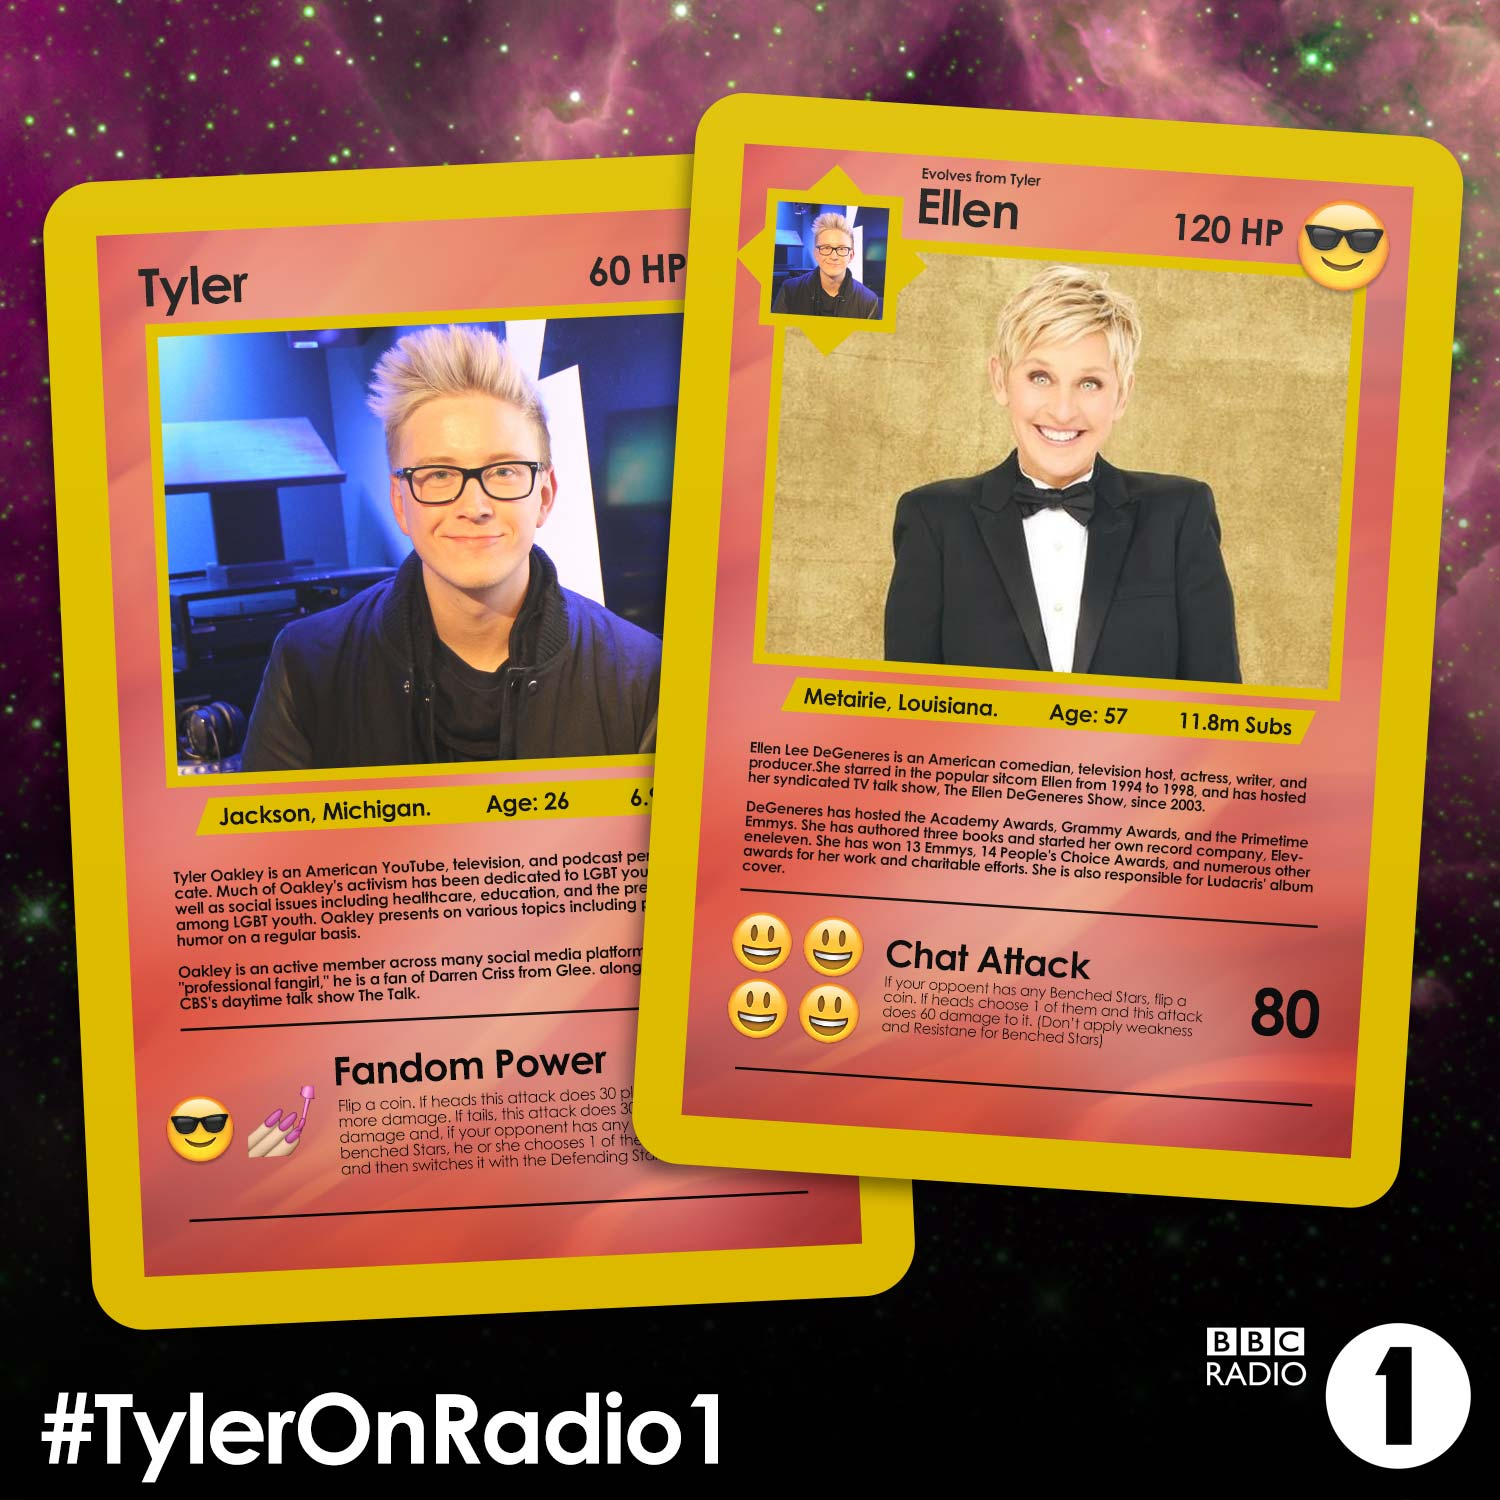 RT @BBCR1: Imagine if there really were @TylerOakley and @TheEllenShow playing cards! #TylerOnRadio1 http://t.co/cvur7CQm85 http://t.co/yd1…